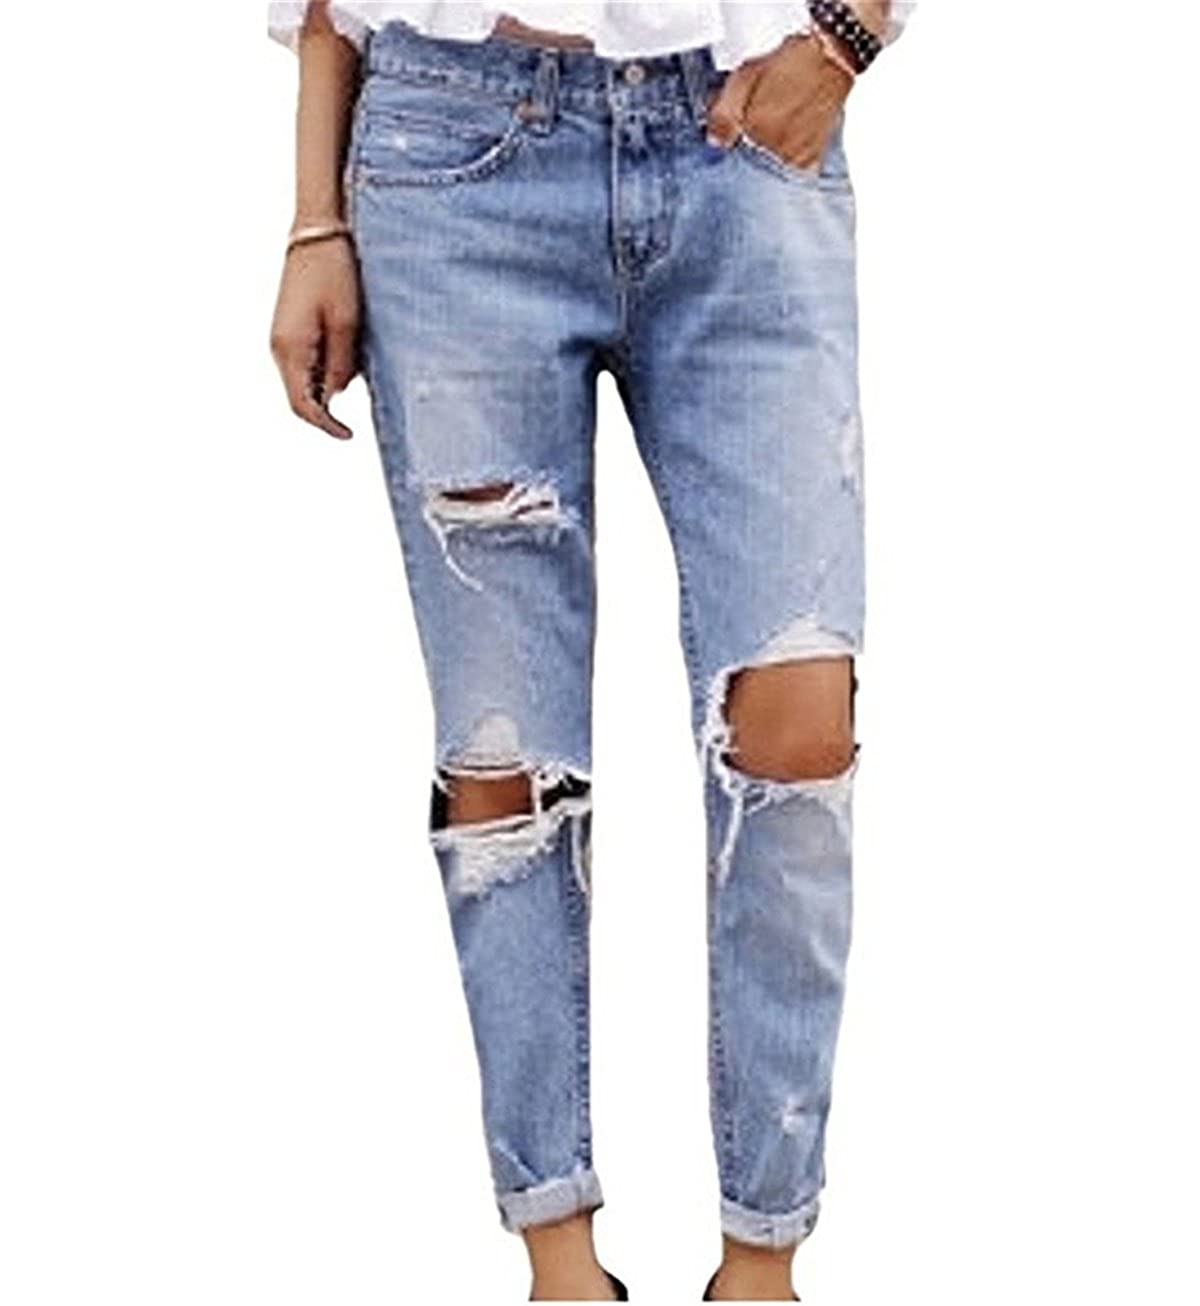 79bd0d9794e FCYOSO Women s Destroyed Jeans Ripped Washed Boyfriend Long Denim Trousers  at Amazon Women s Jeans store